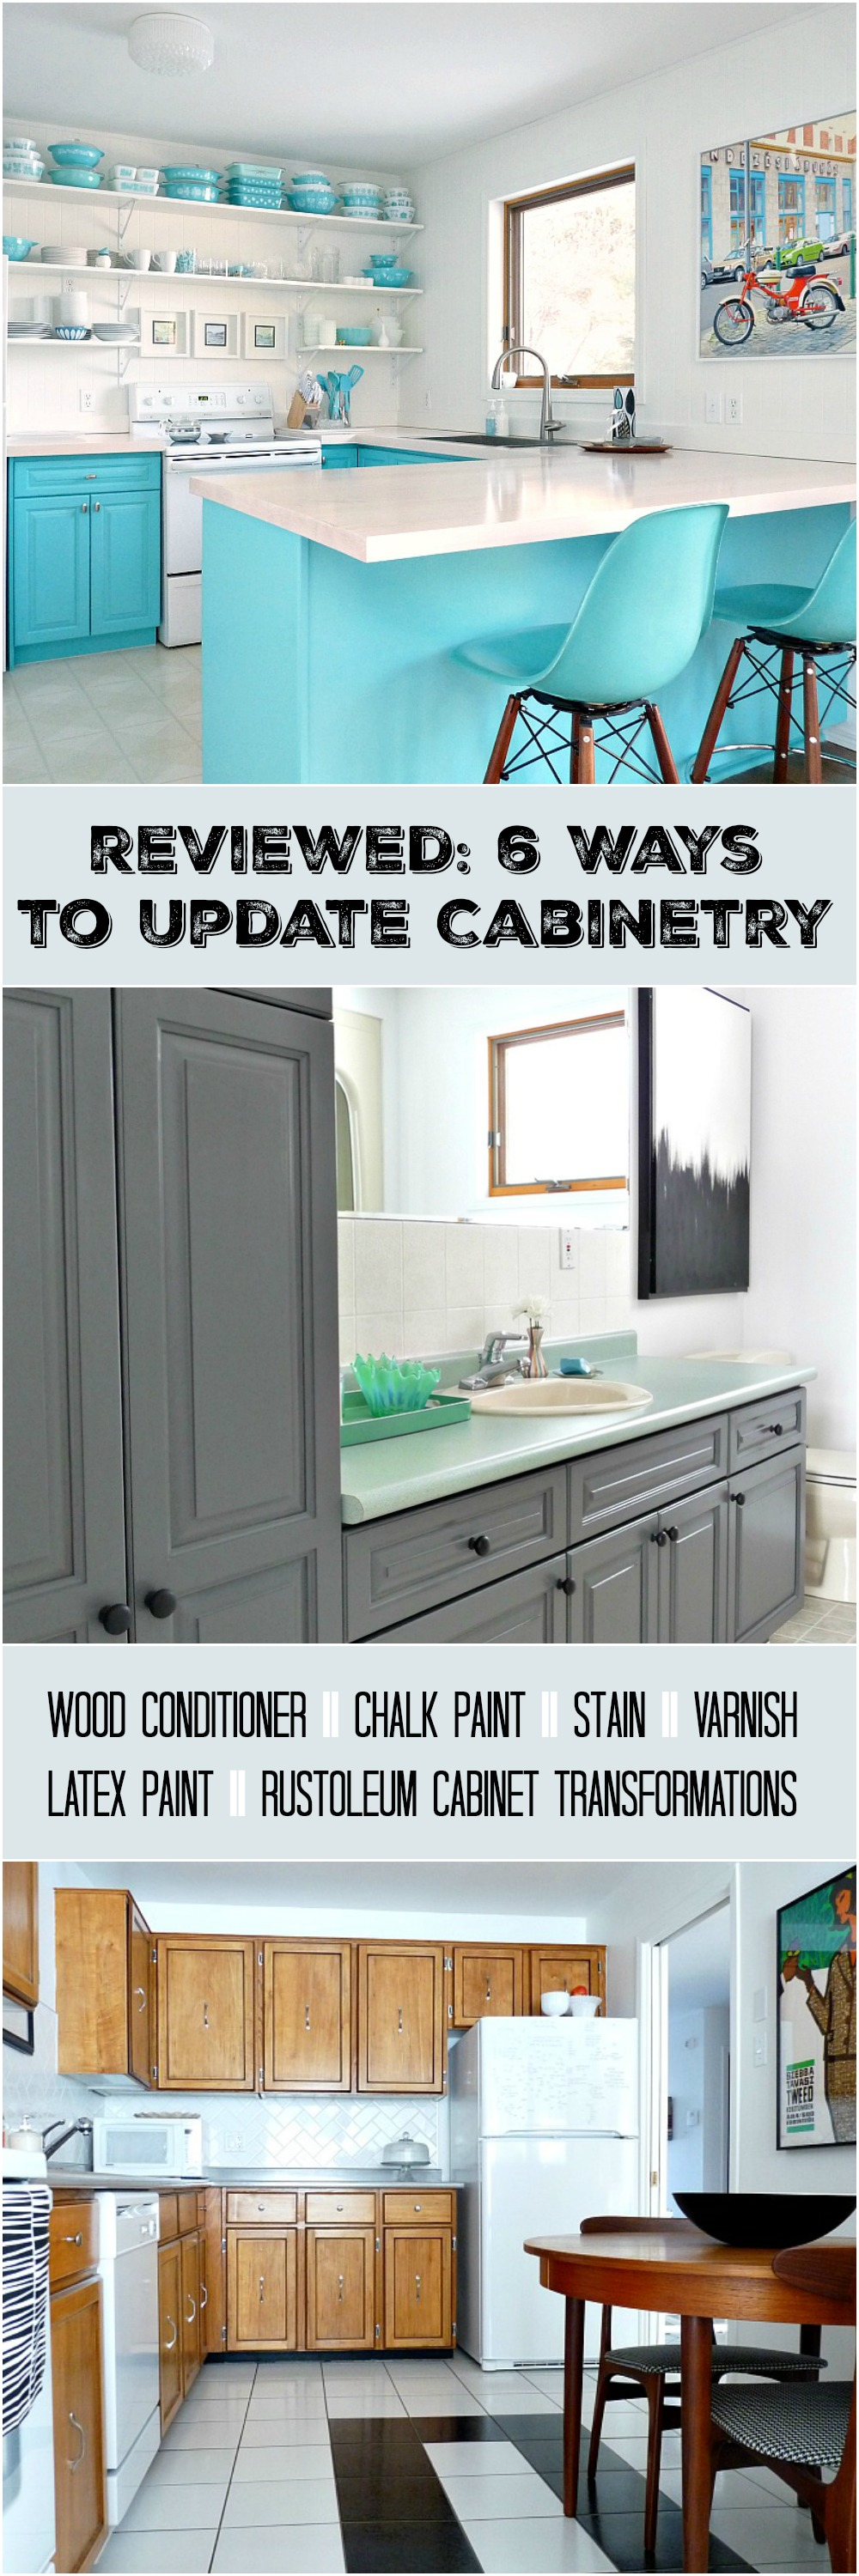 Rustoleum Kitchen Cabinets Cabinet Refinishing 101 Latex Paint Vs Stain Vs Rust Oleum